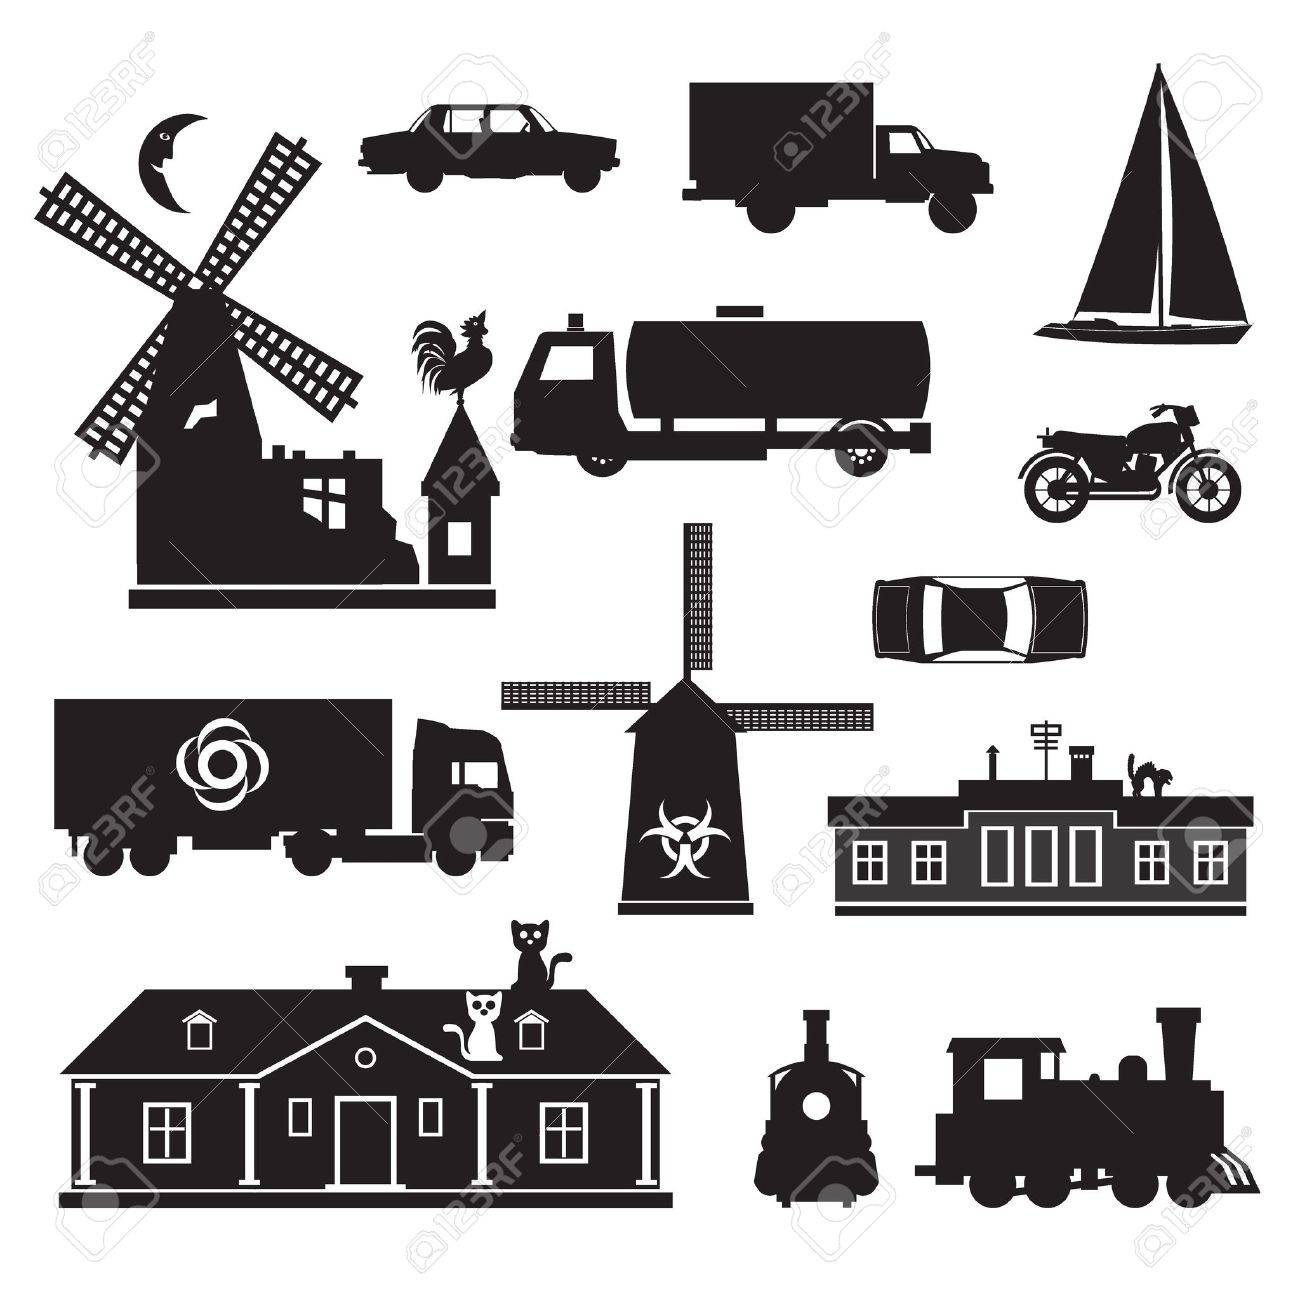 Silhouette - Miscellaneous. silhouette clip art of transportation and other. Black icons of various objects. Stock Vector - 10959811